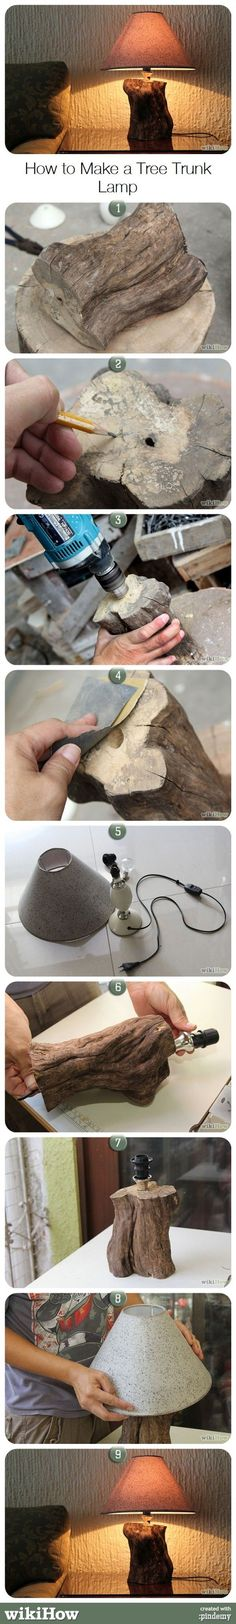 Check out the tutorial on how to make a DIY tree trunk lamp @istandarddesign